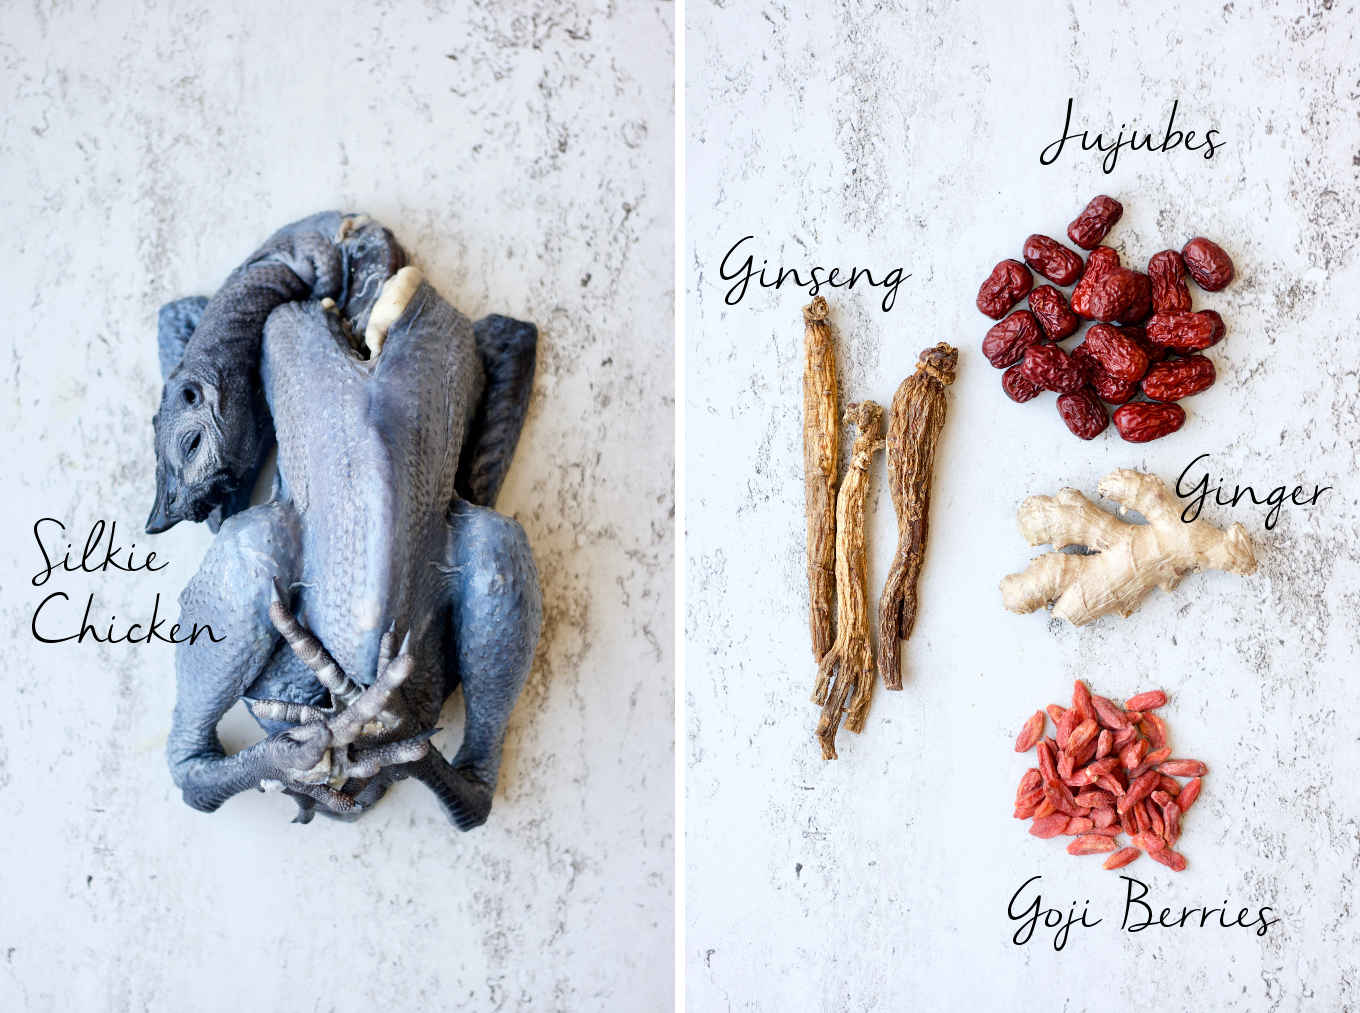 Ingredients for Chinese ginseng chicken soup: silkie chicken, ginseng, jujubes, ginger and goji berries.